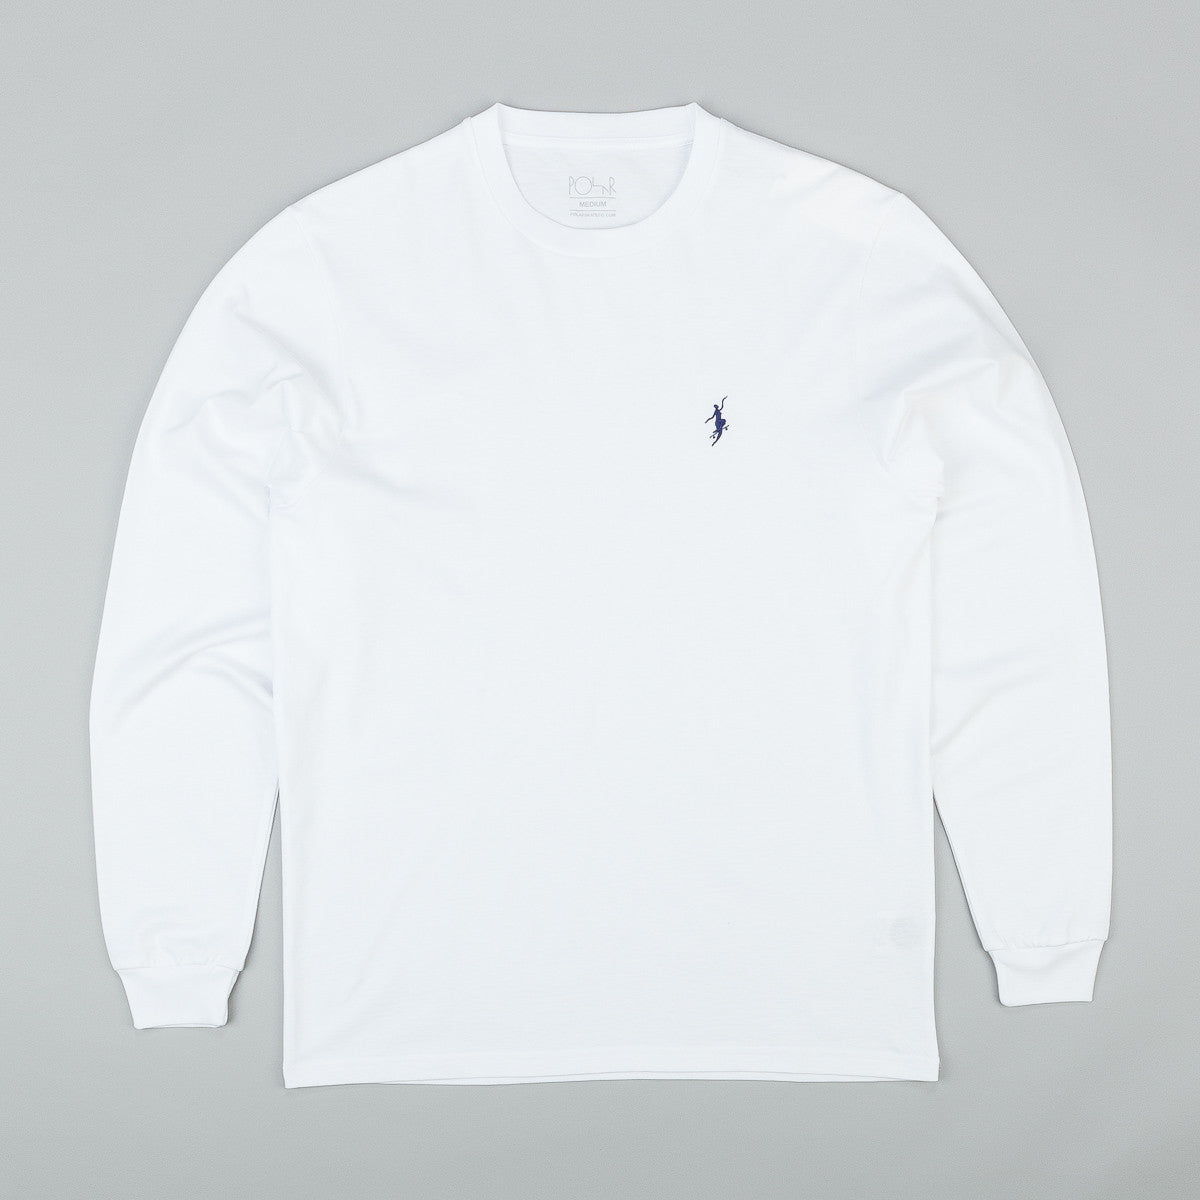 Polar No Comply Longsleeve T-Shirt - White / Navy